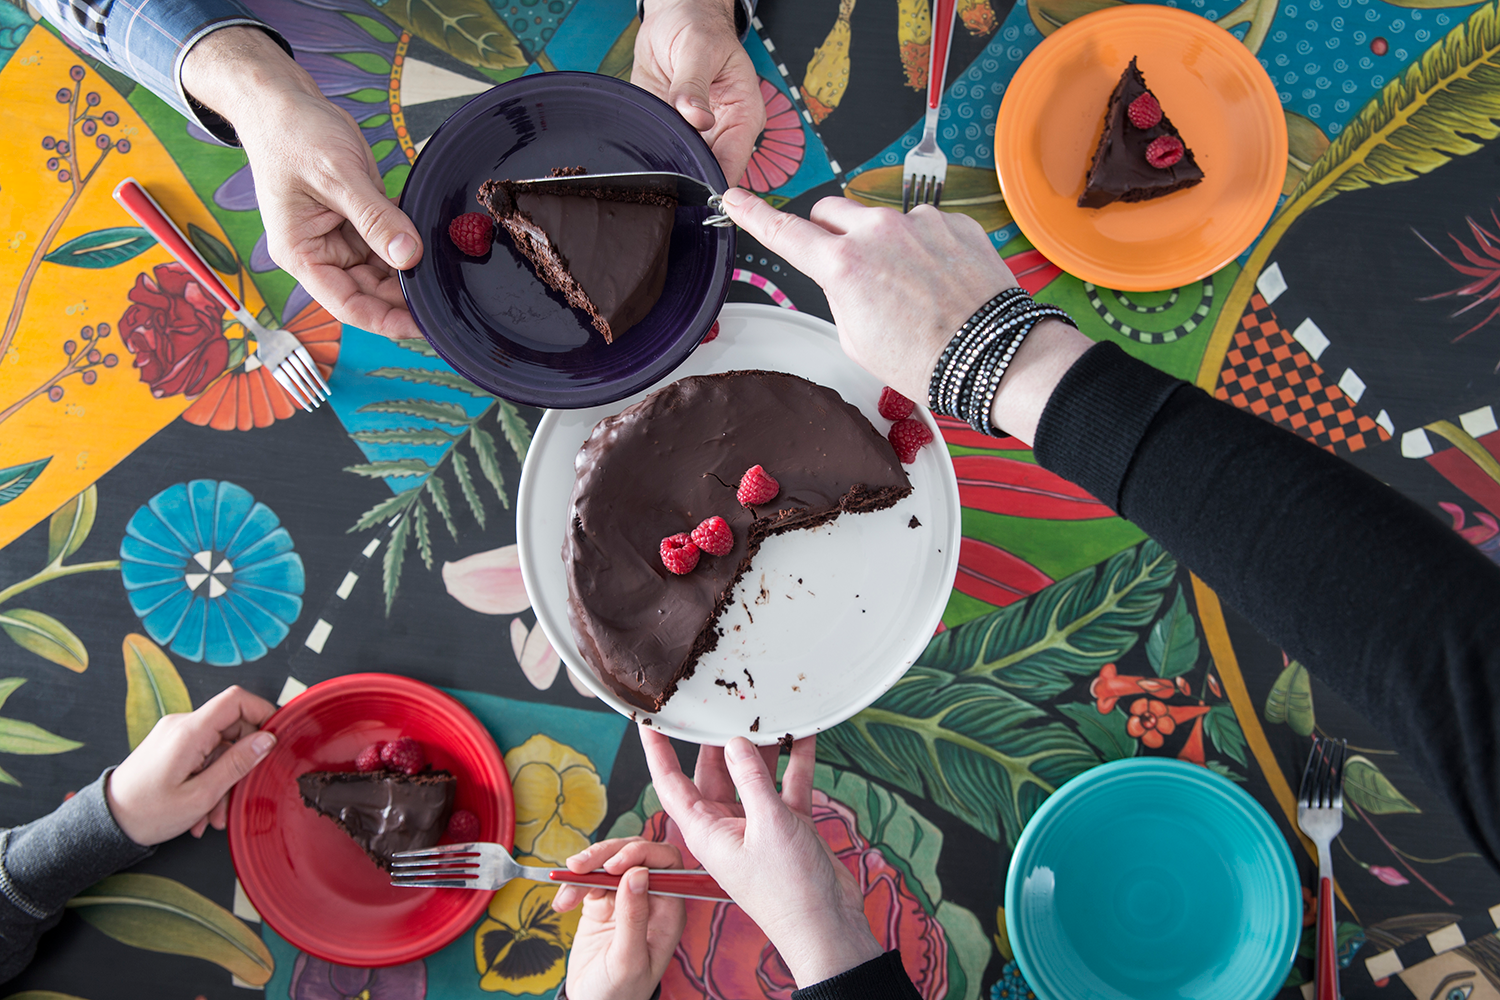 Have your cake and eat it too.